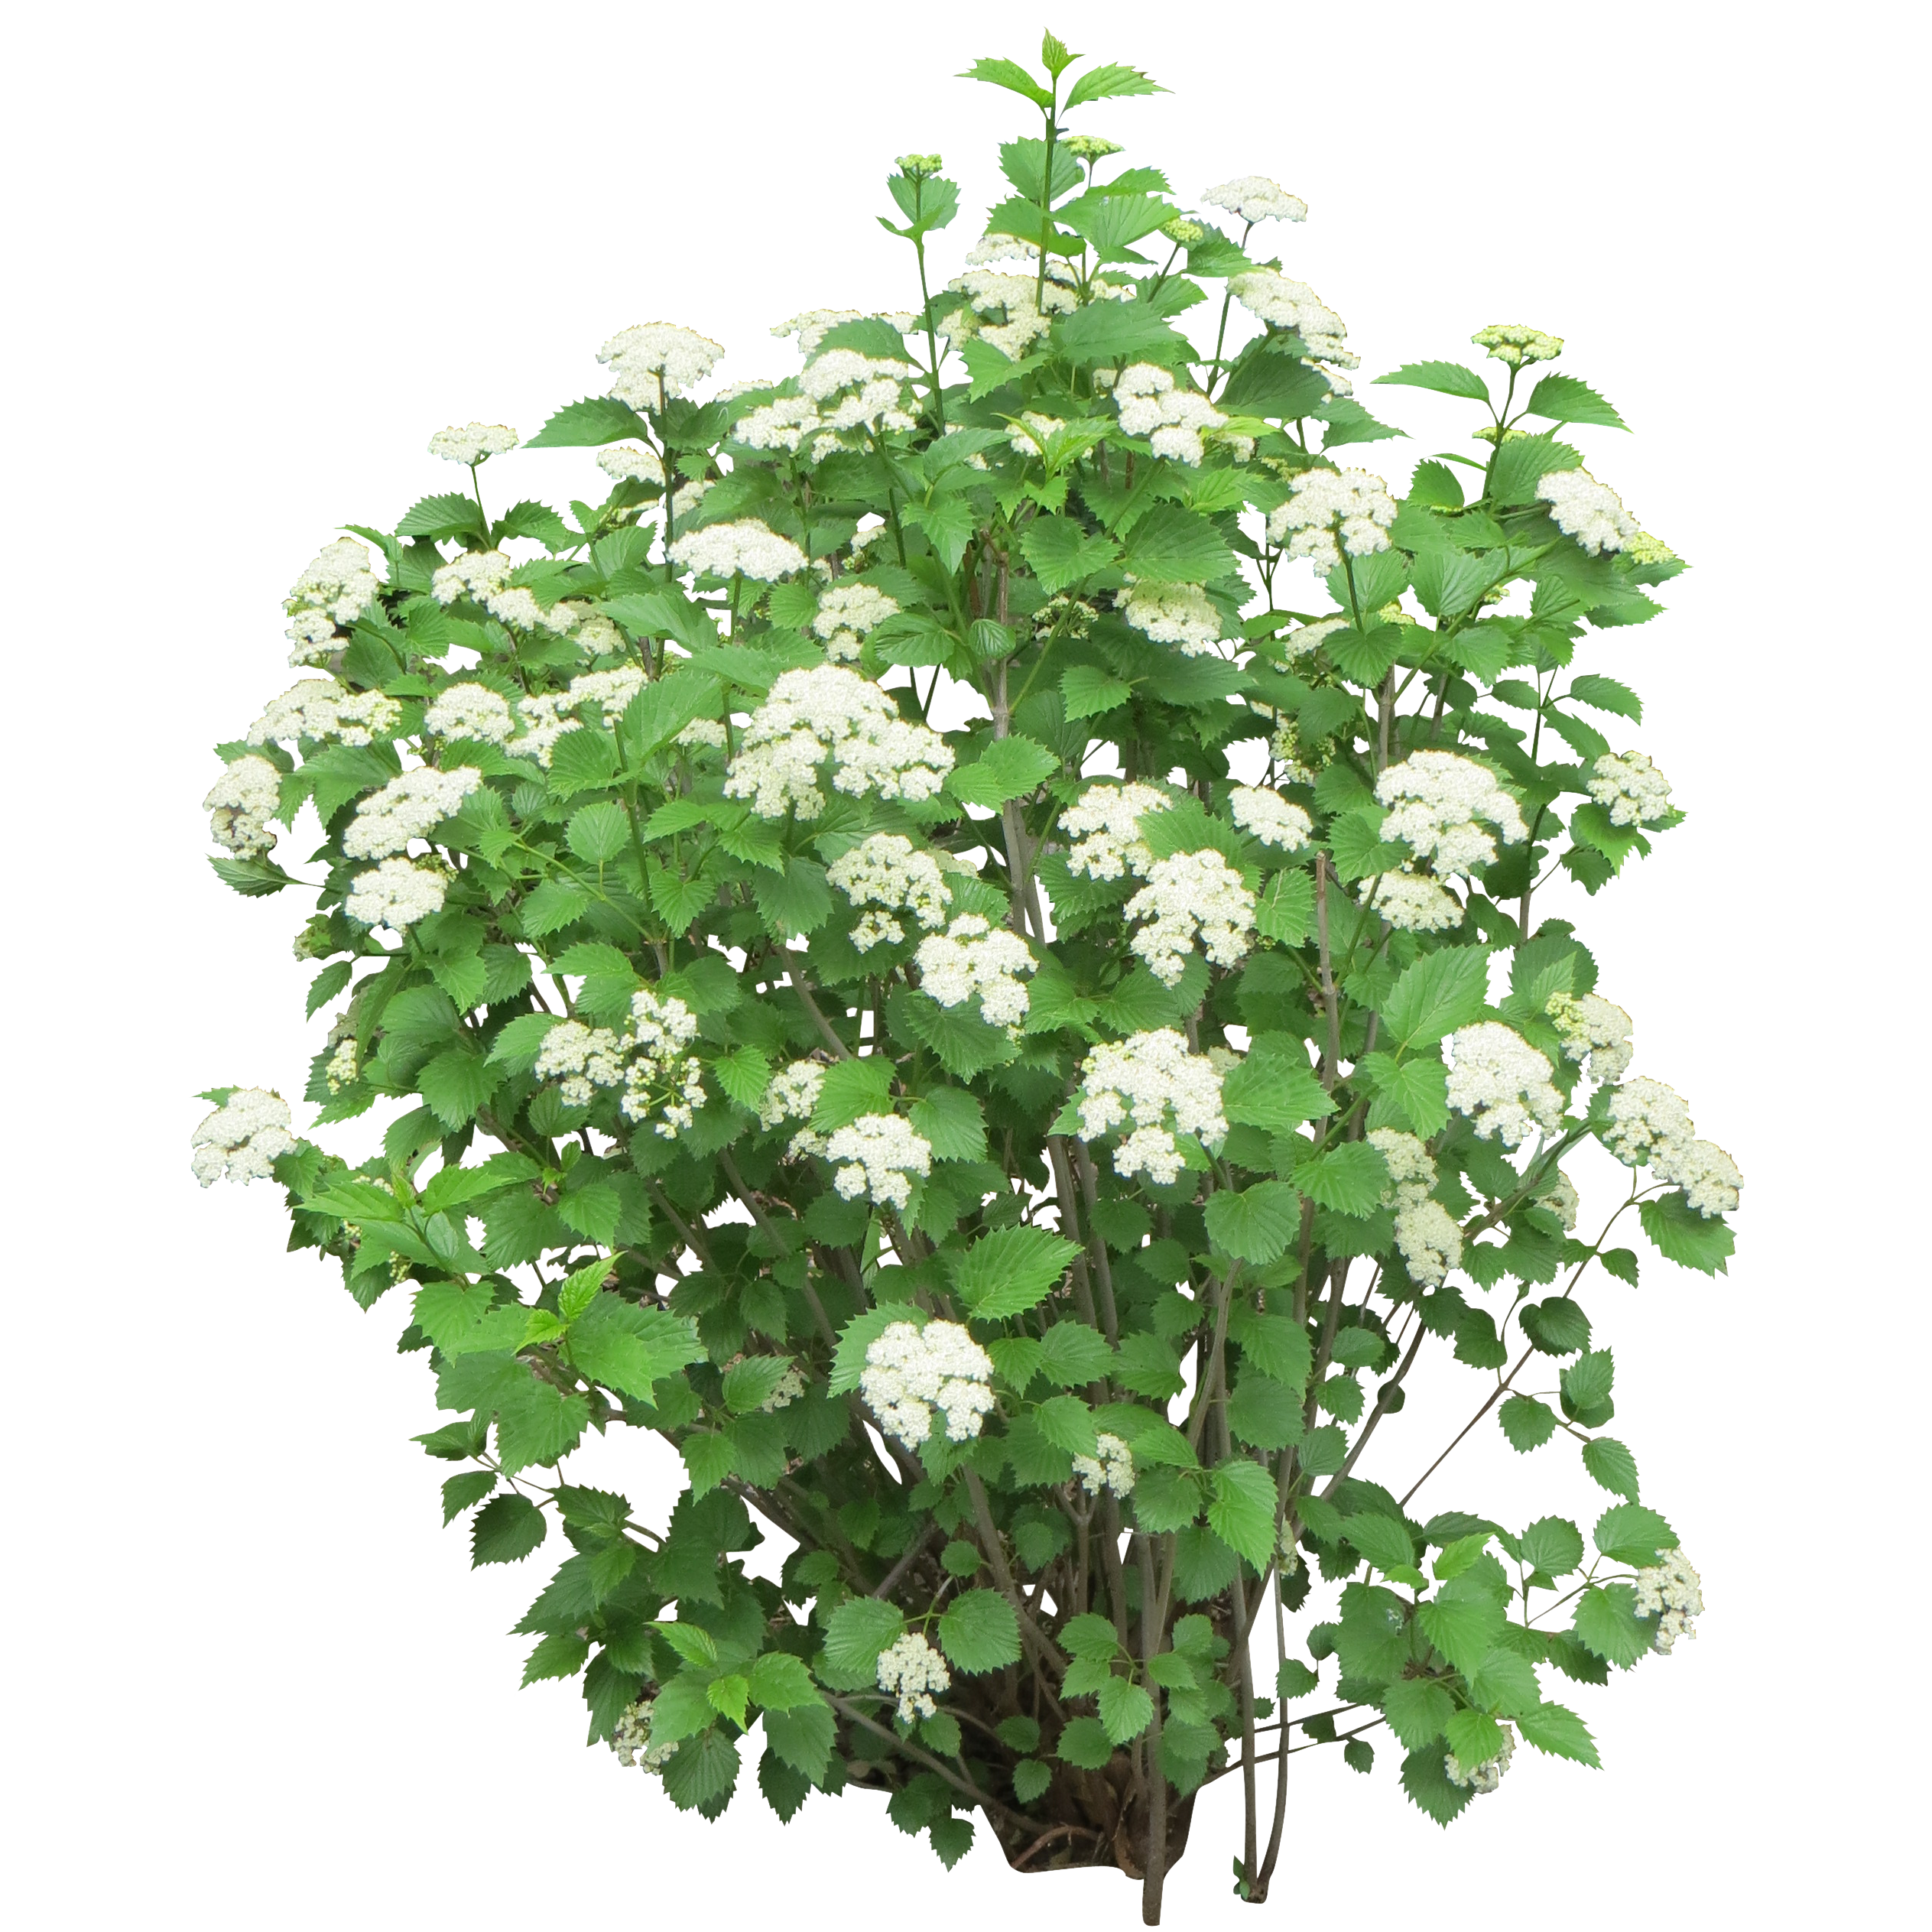 Shrubs bushes png. Bush image r no